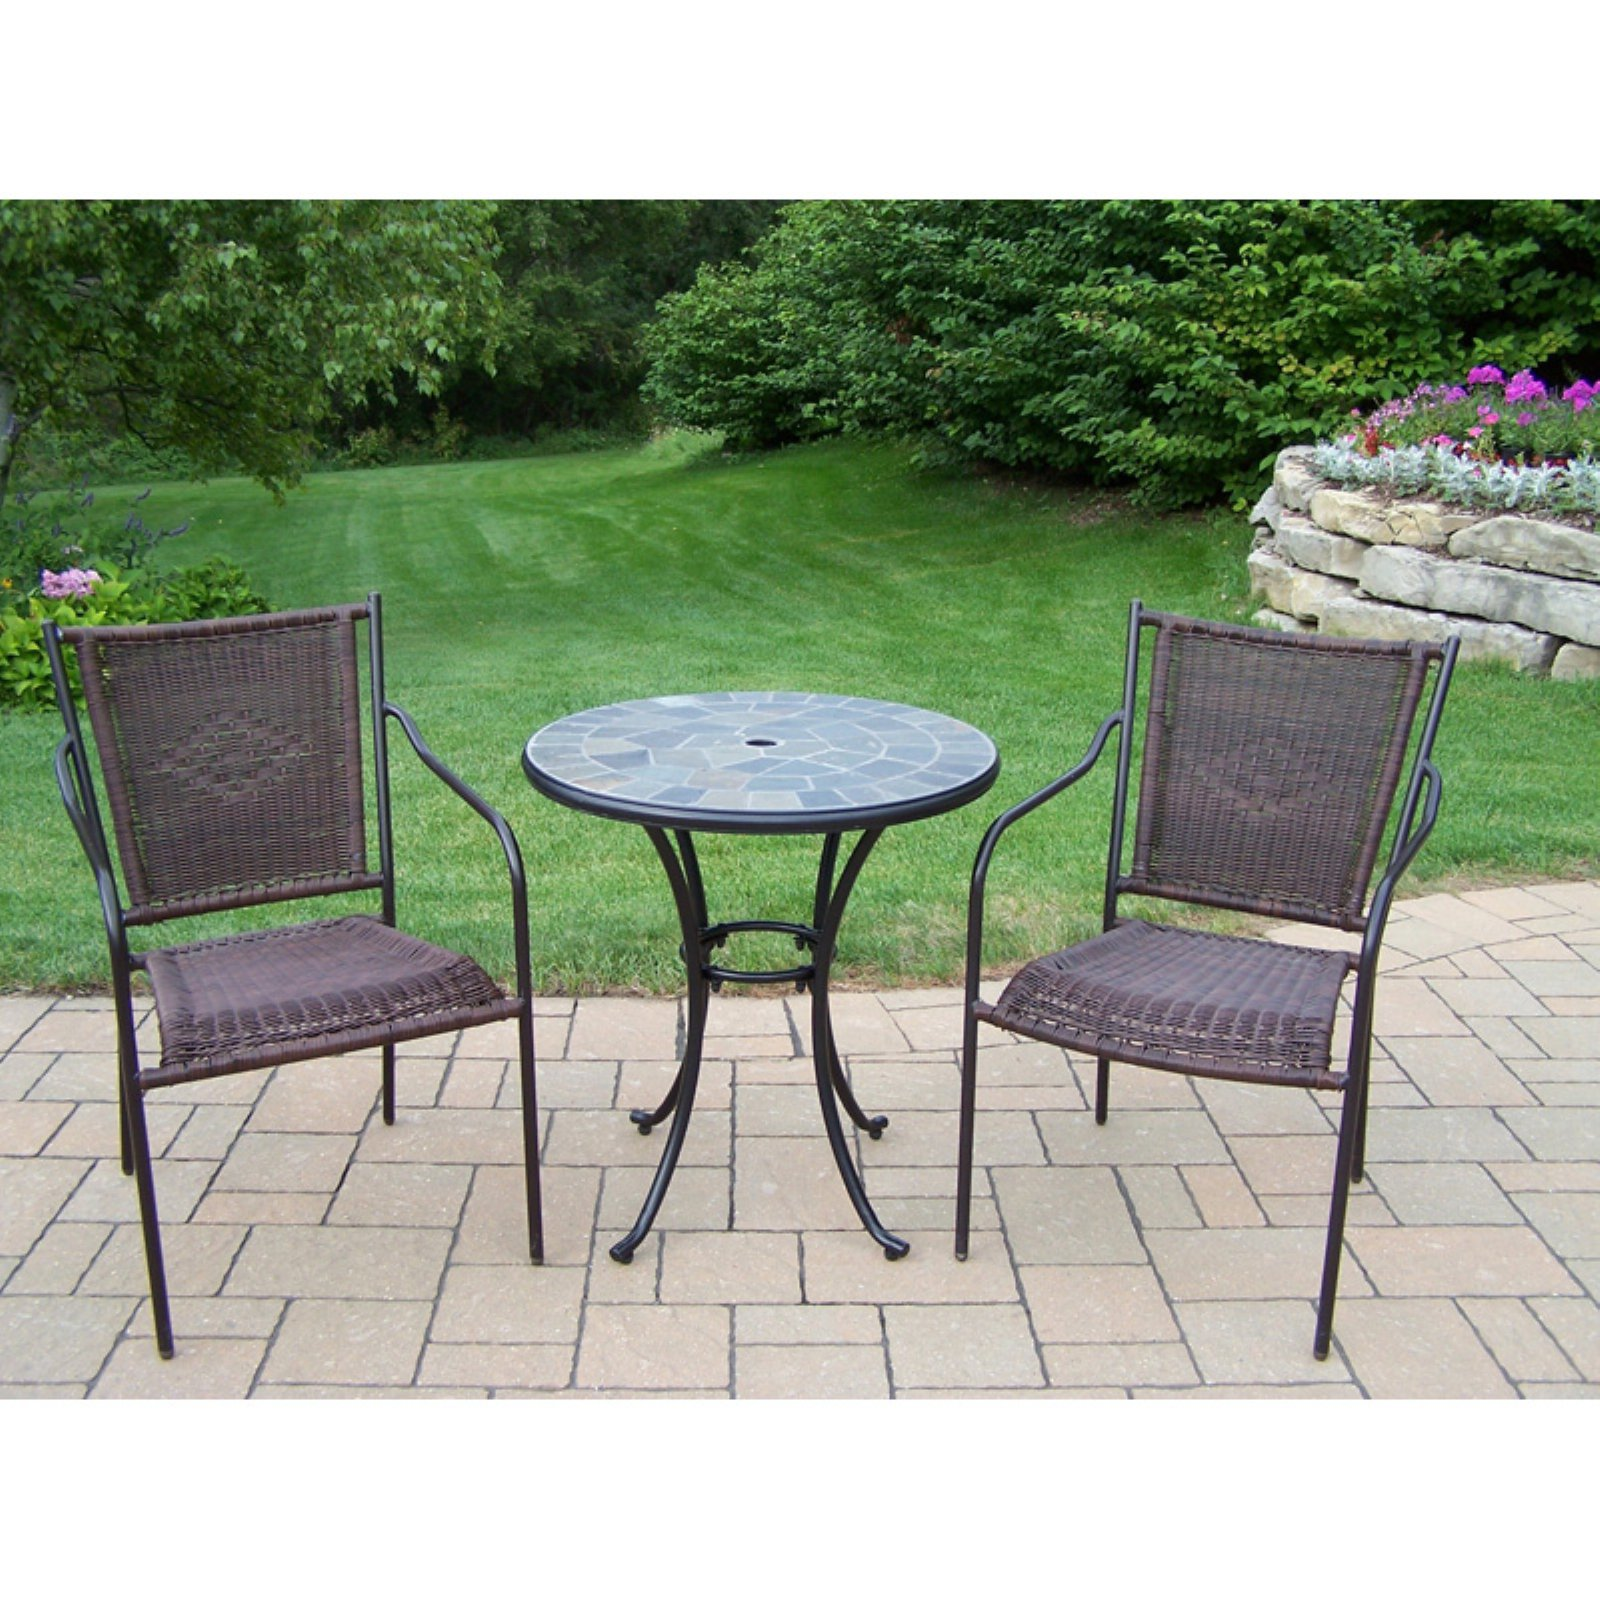 Oakland Living Stone Art Wicker Patio Bistro Set